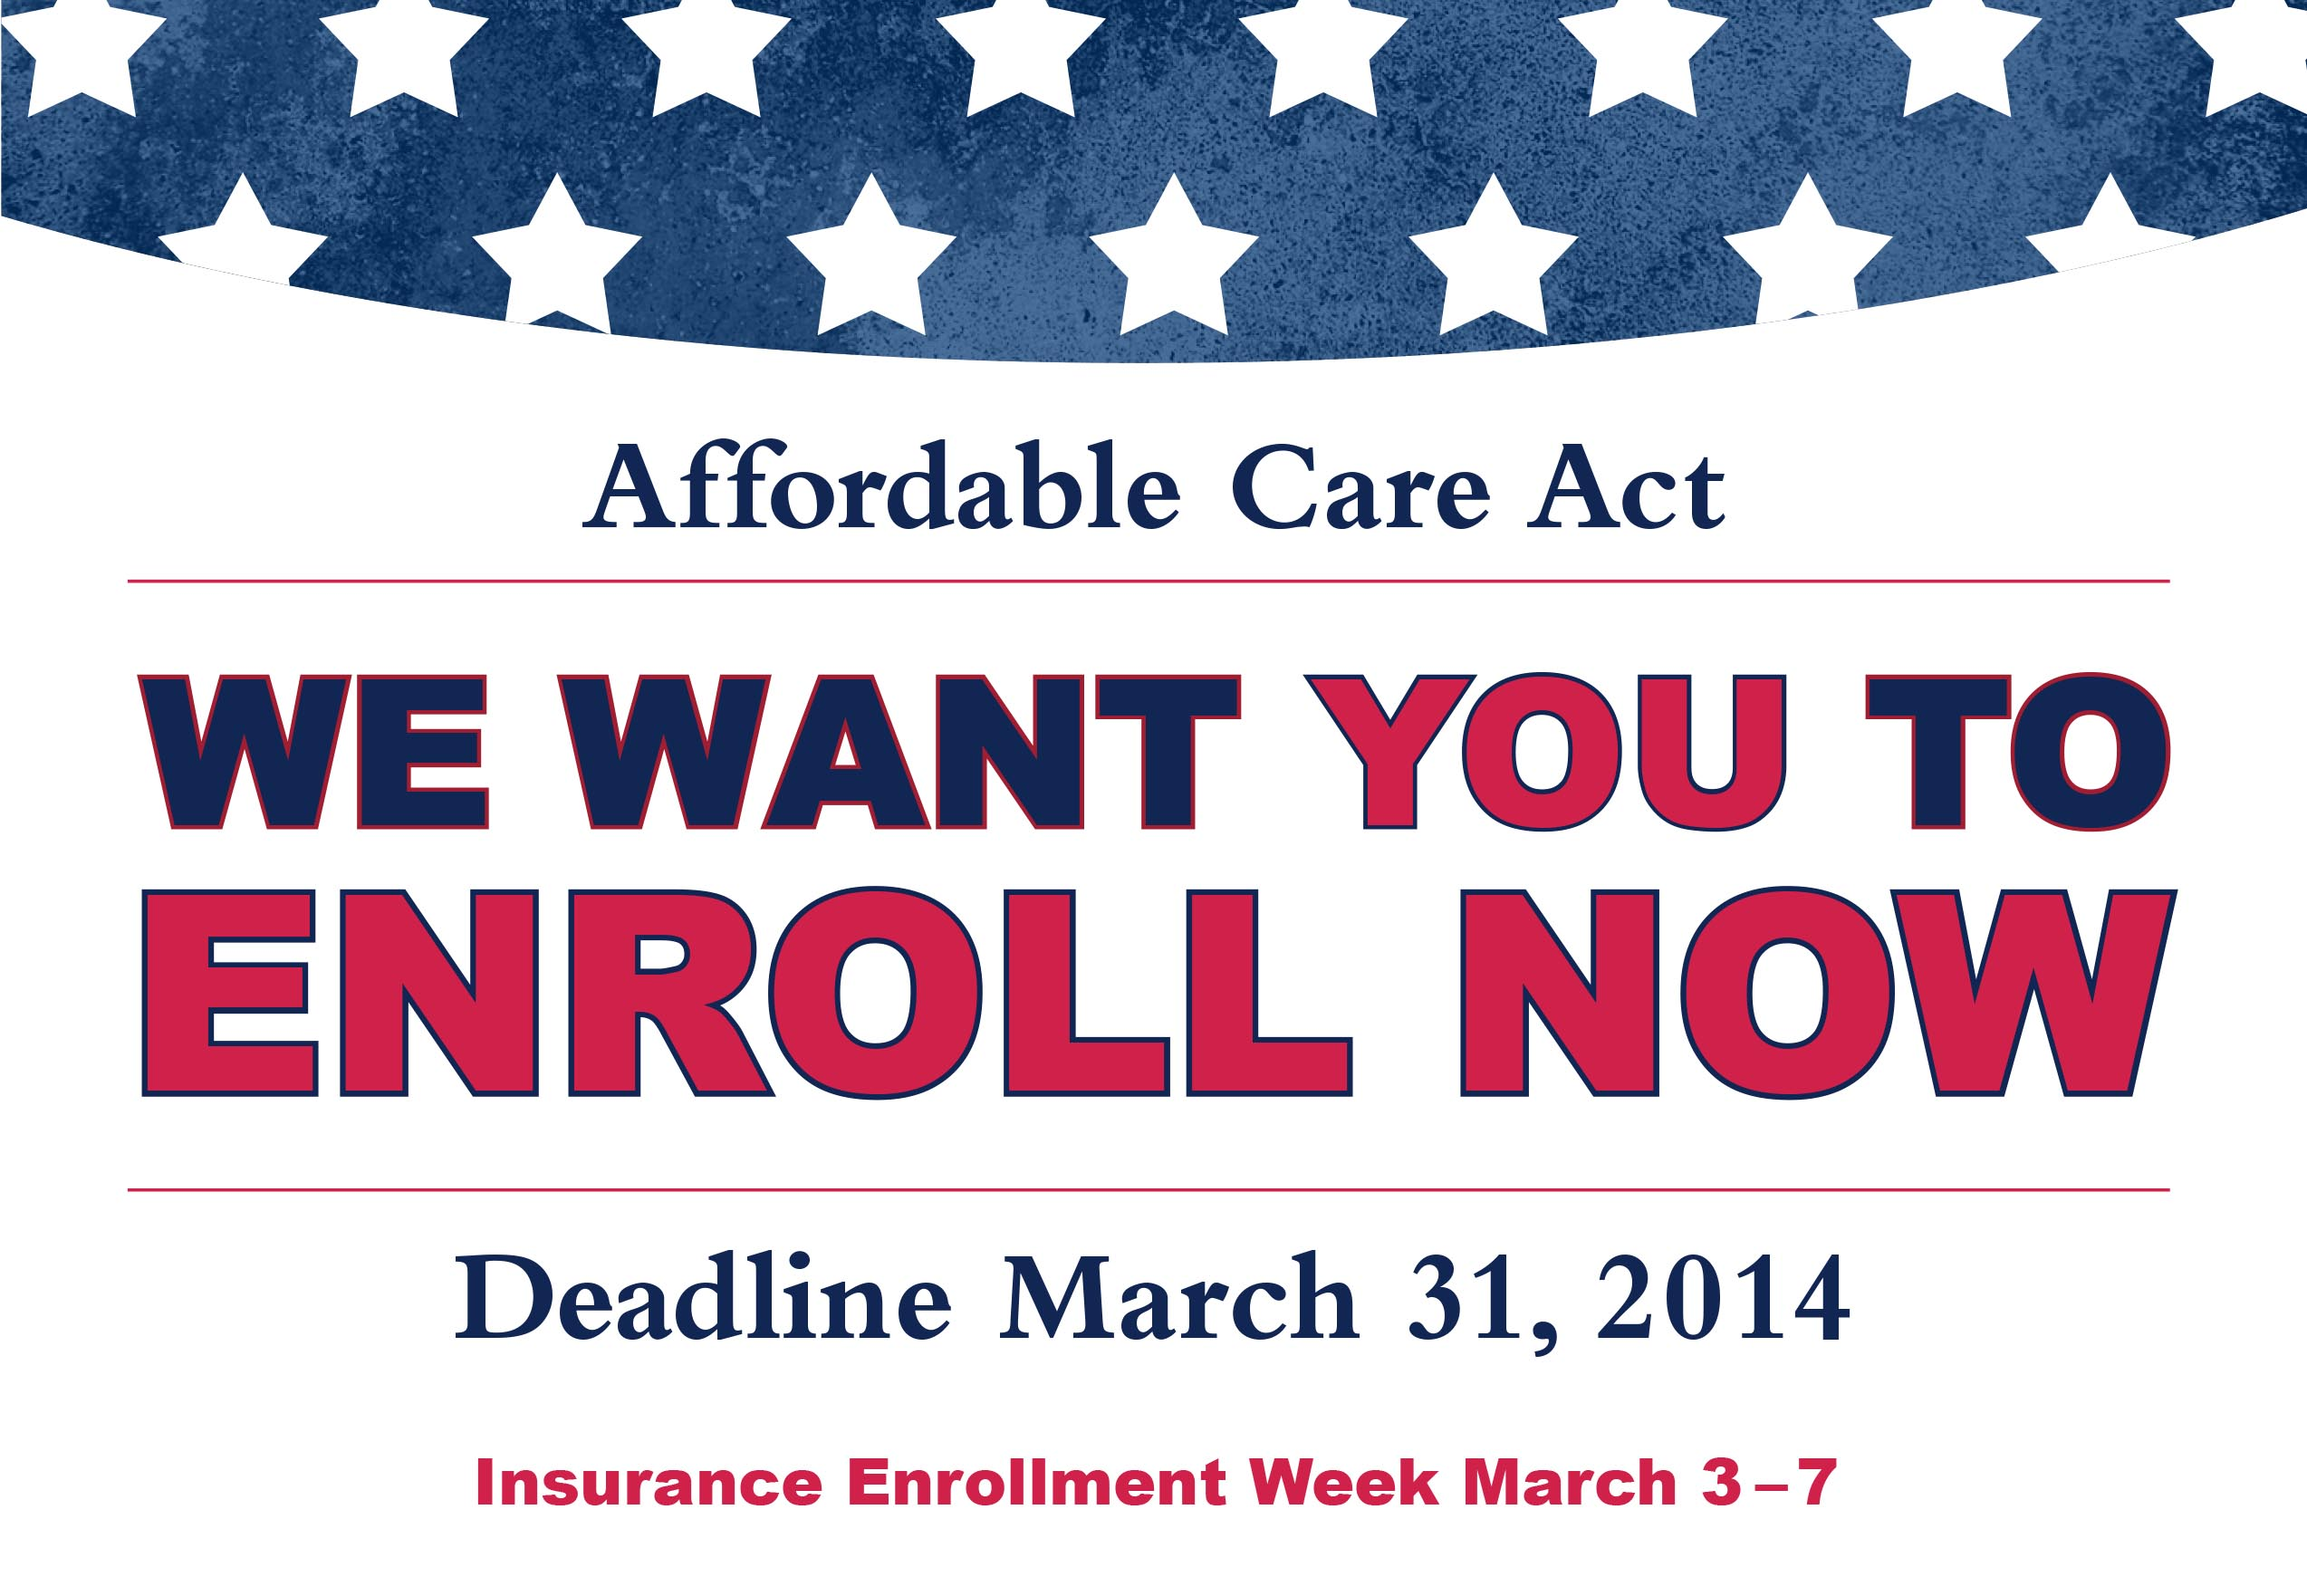 The Affordable Care Act is Anything but Affordable